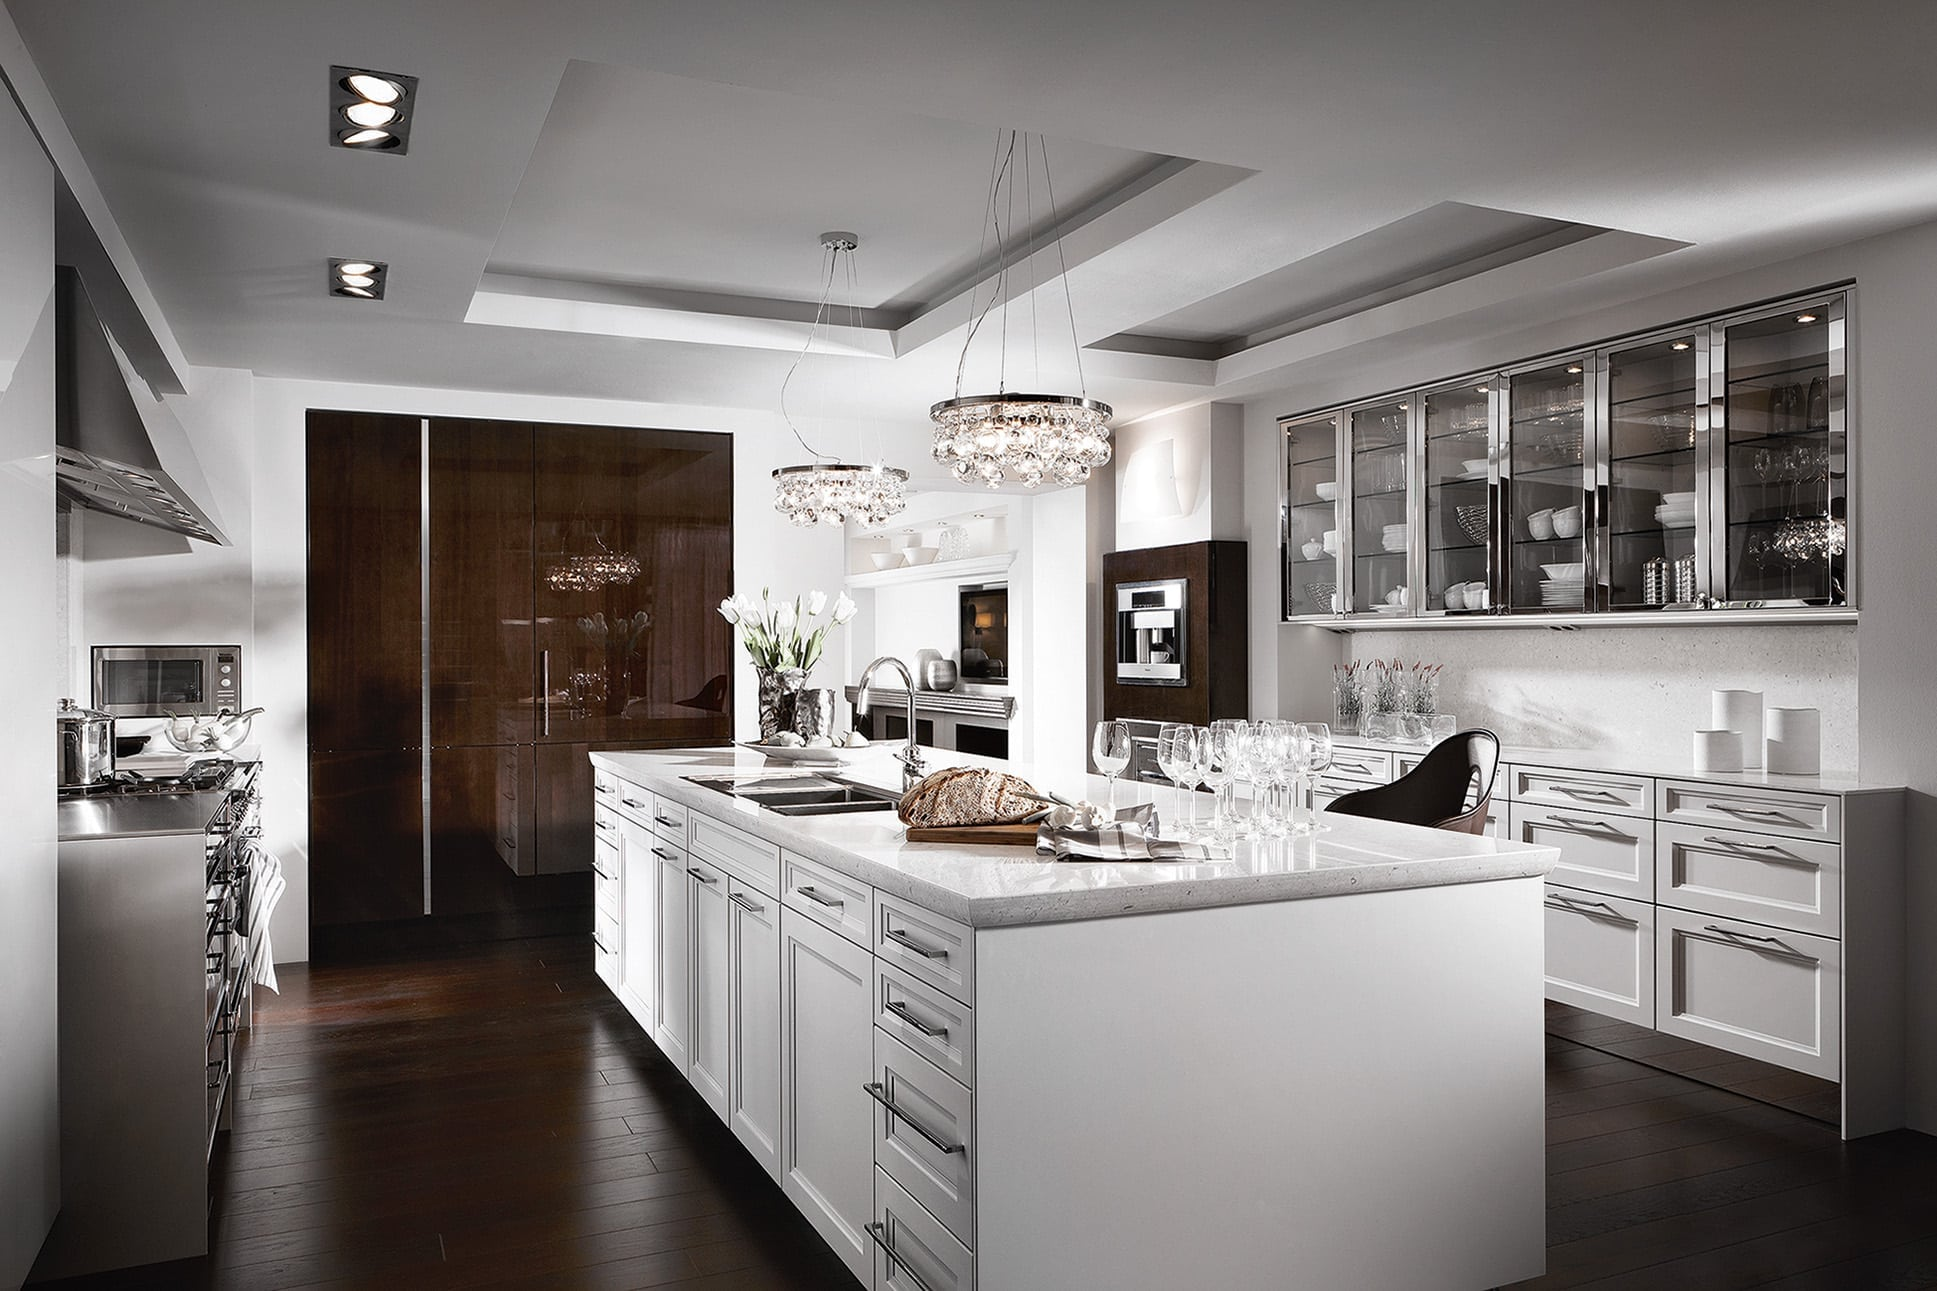 Image of a classic siematic kitchen chichester